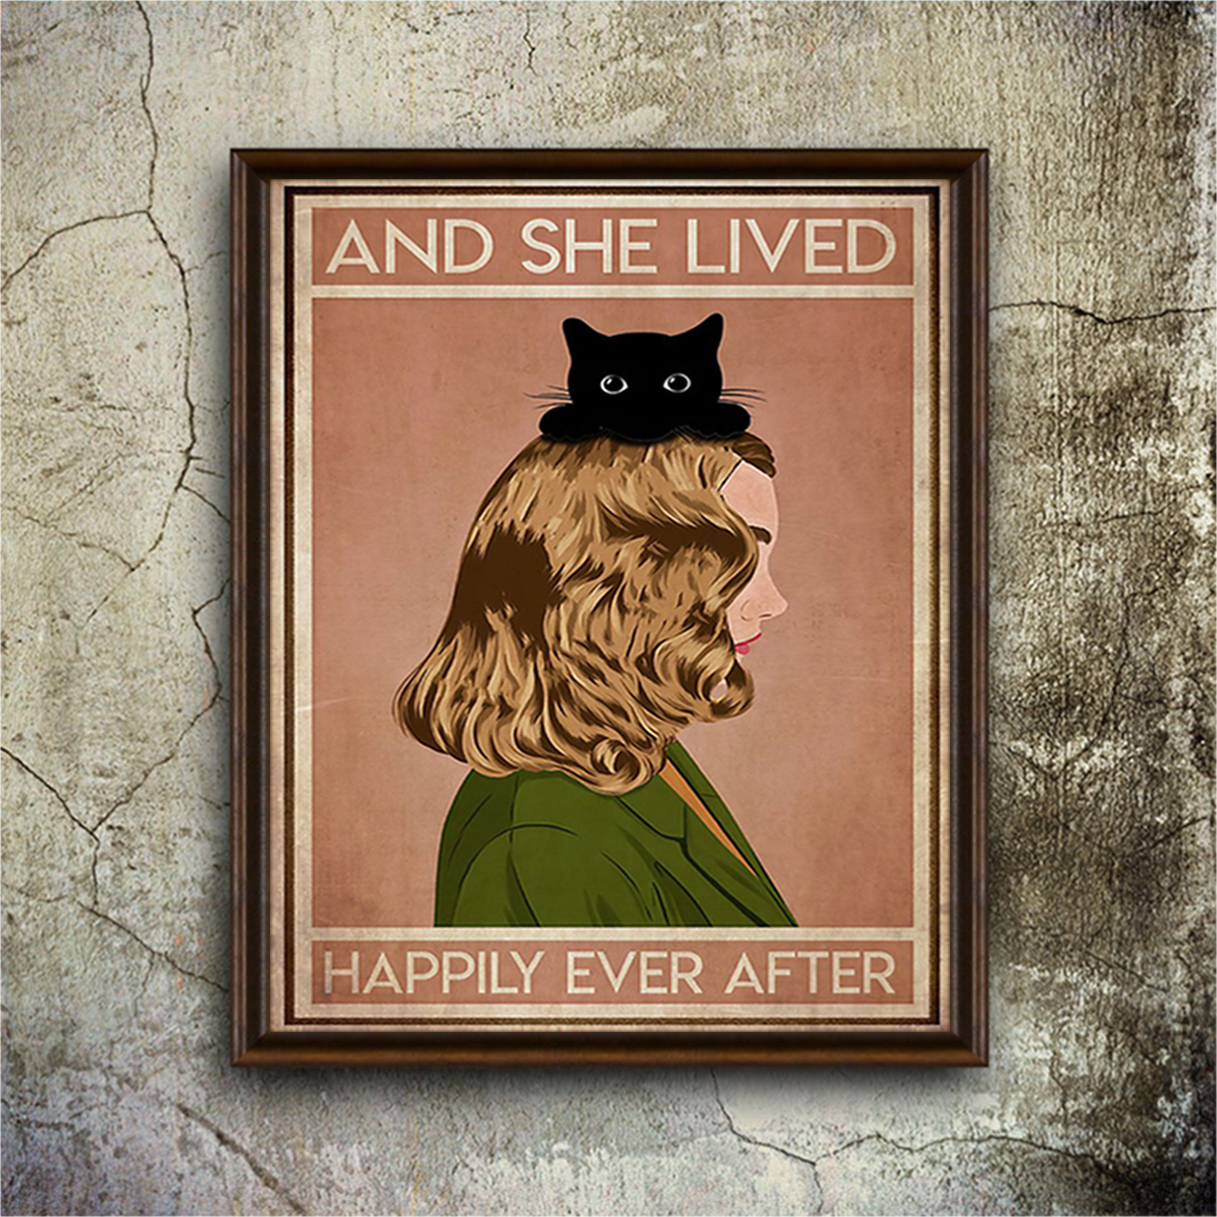 Blonde girl cat and she lived happily ever after poster A1